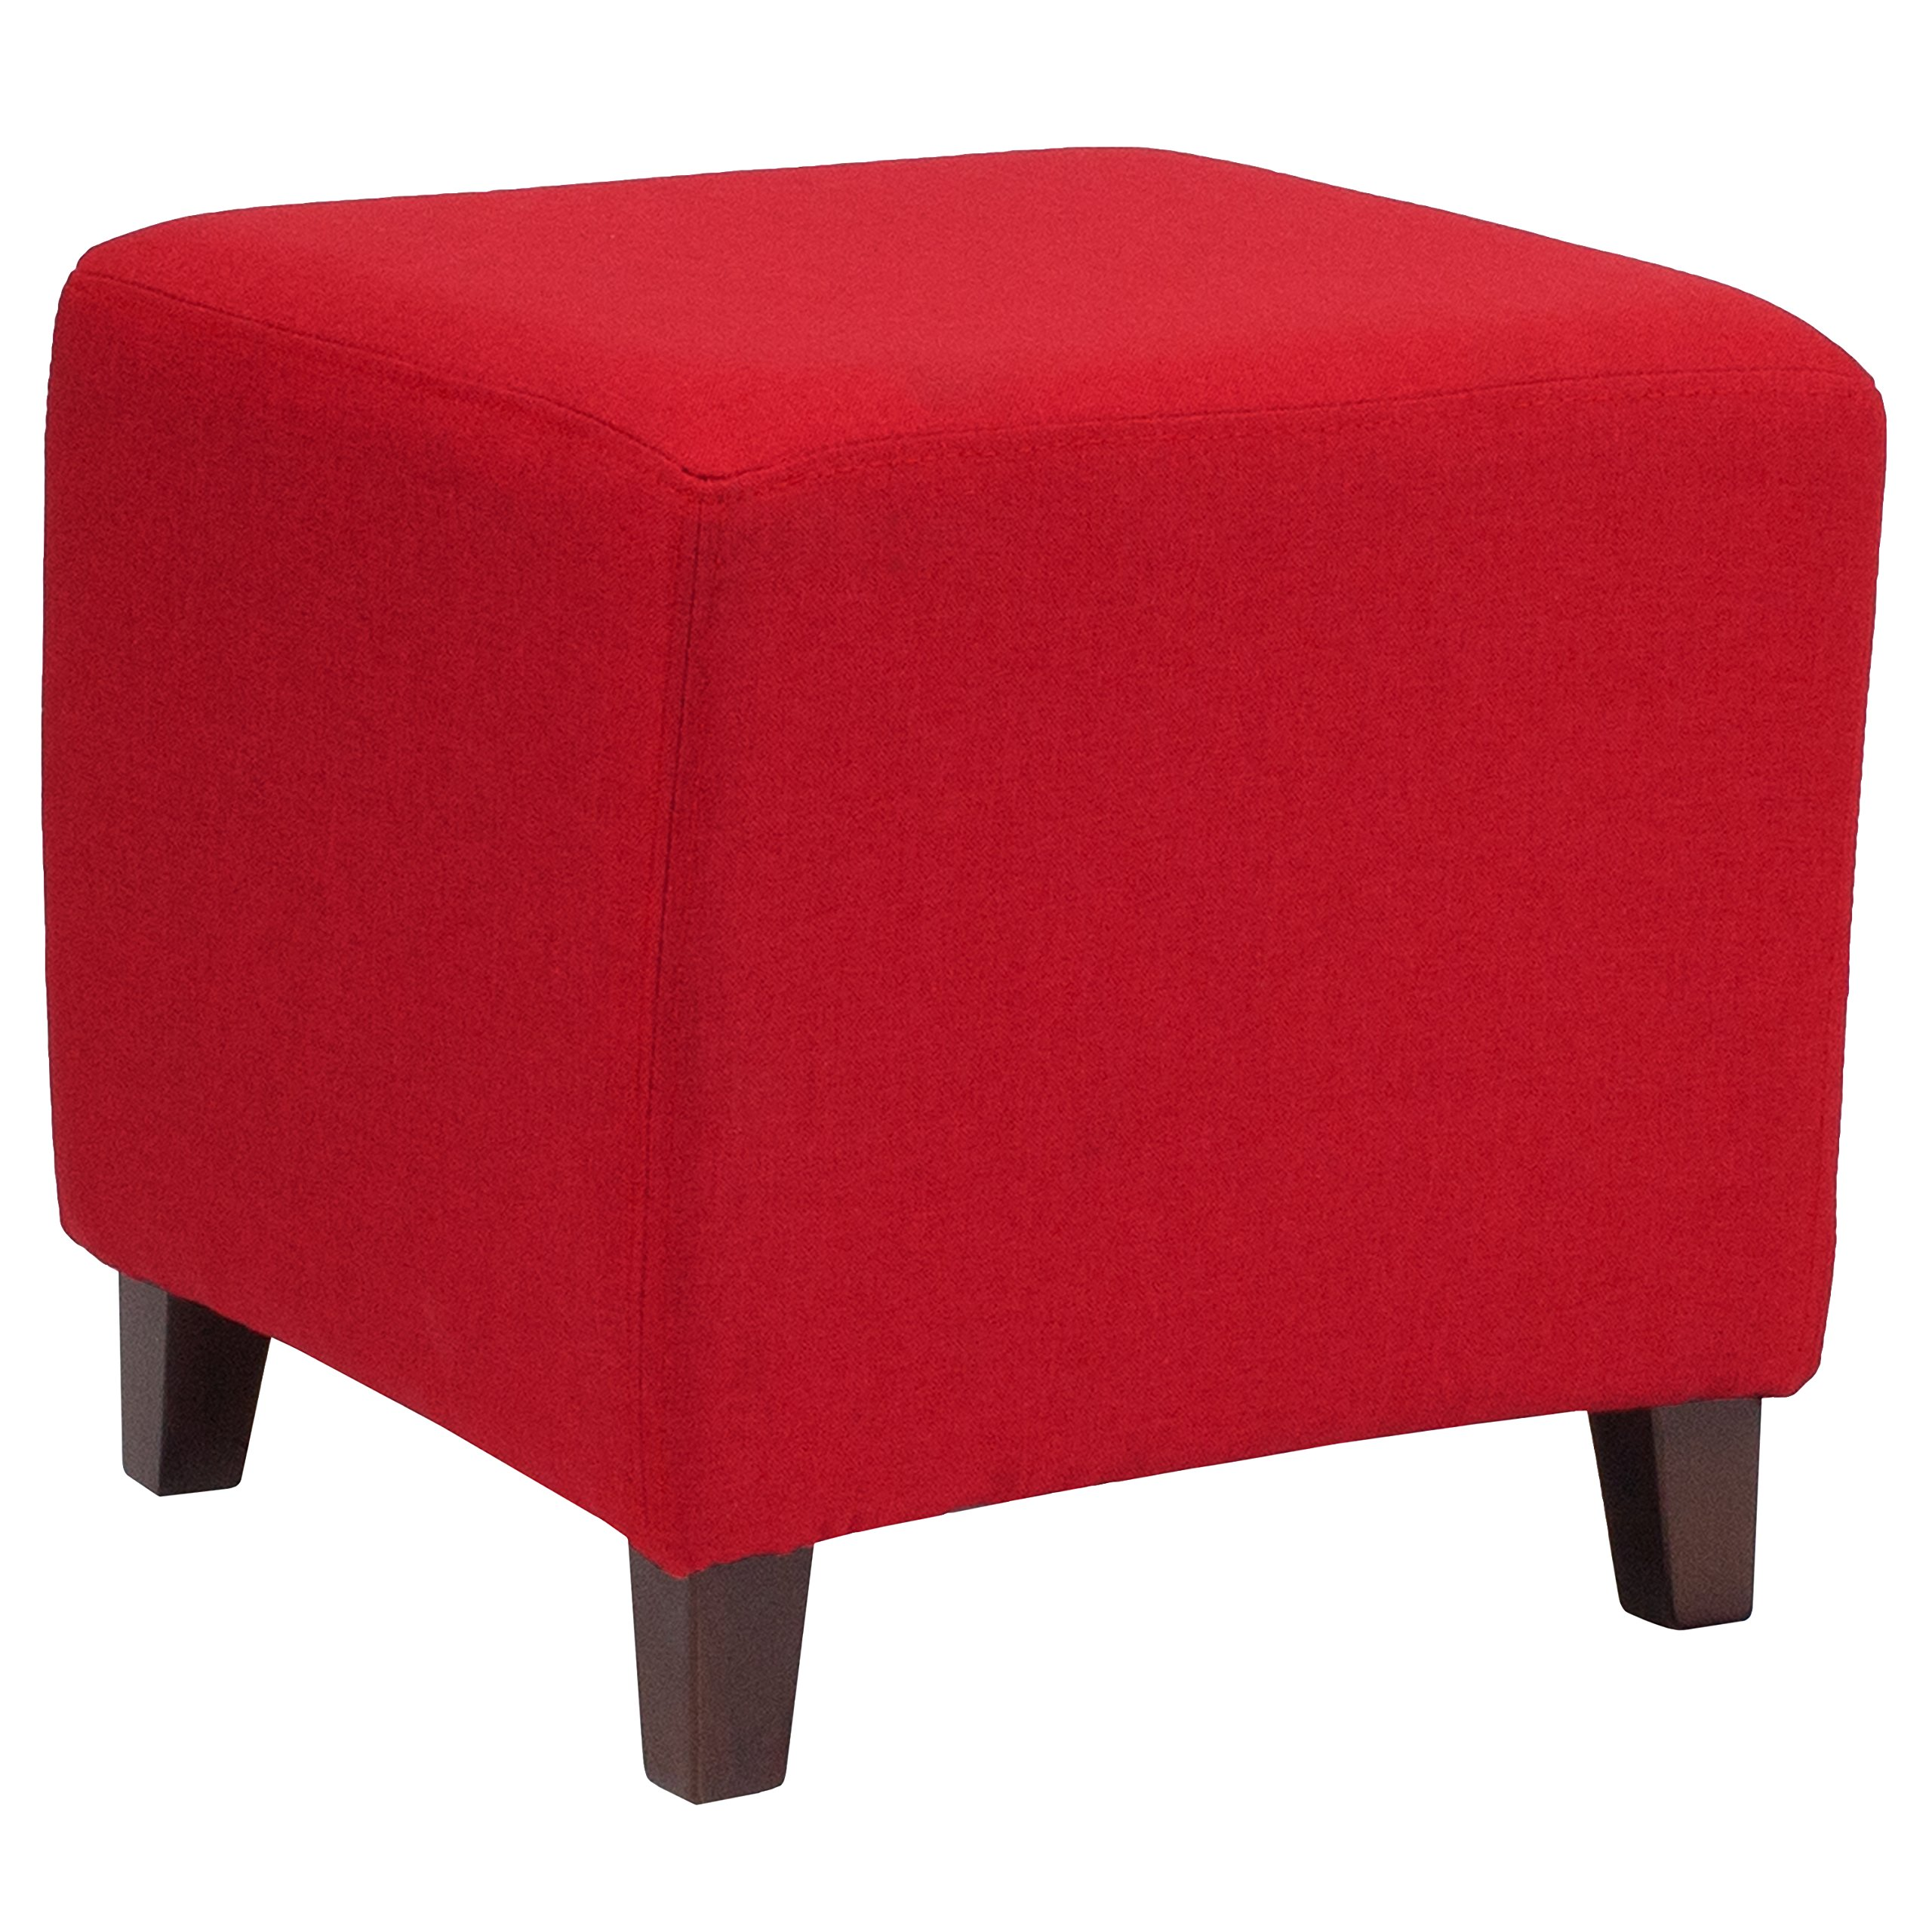 Flash Furniture Ascalon Upholstered Ottoman Pouf in Red Fabric